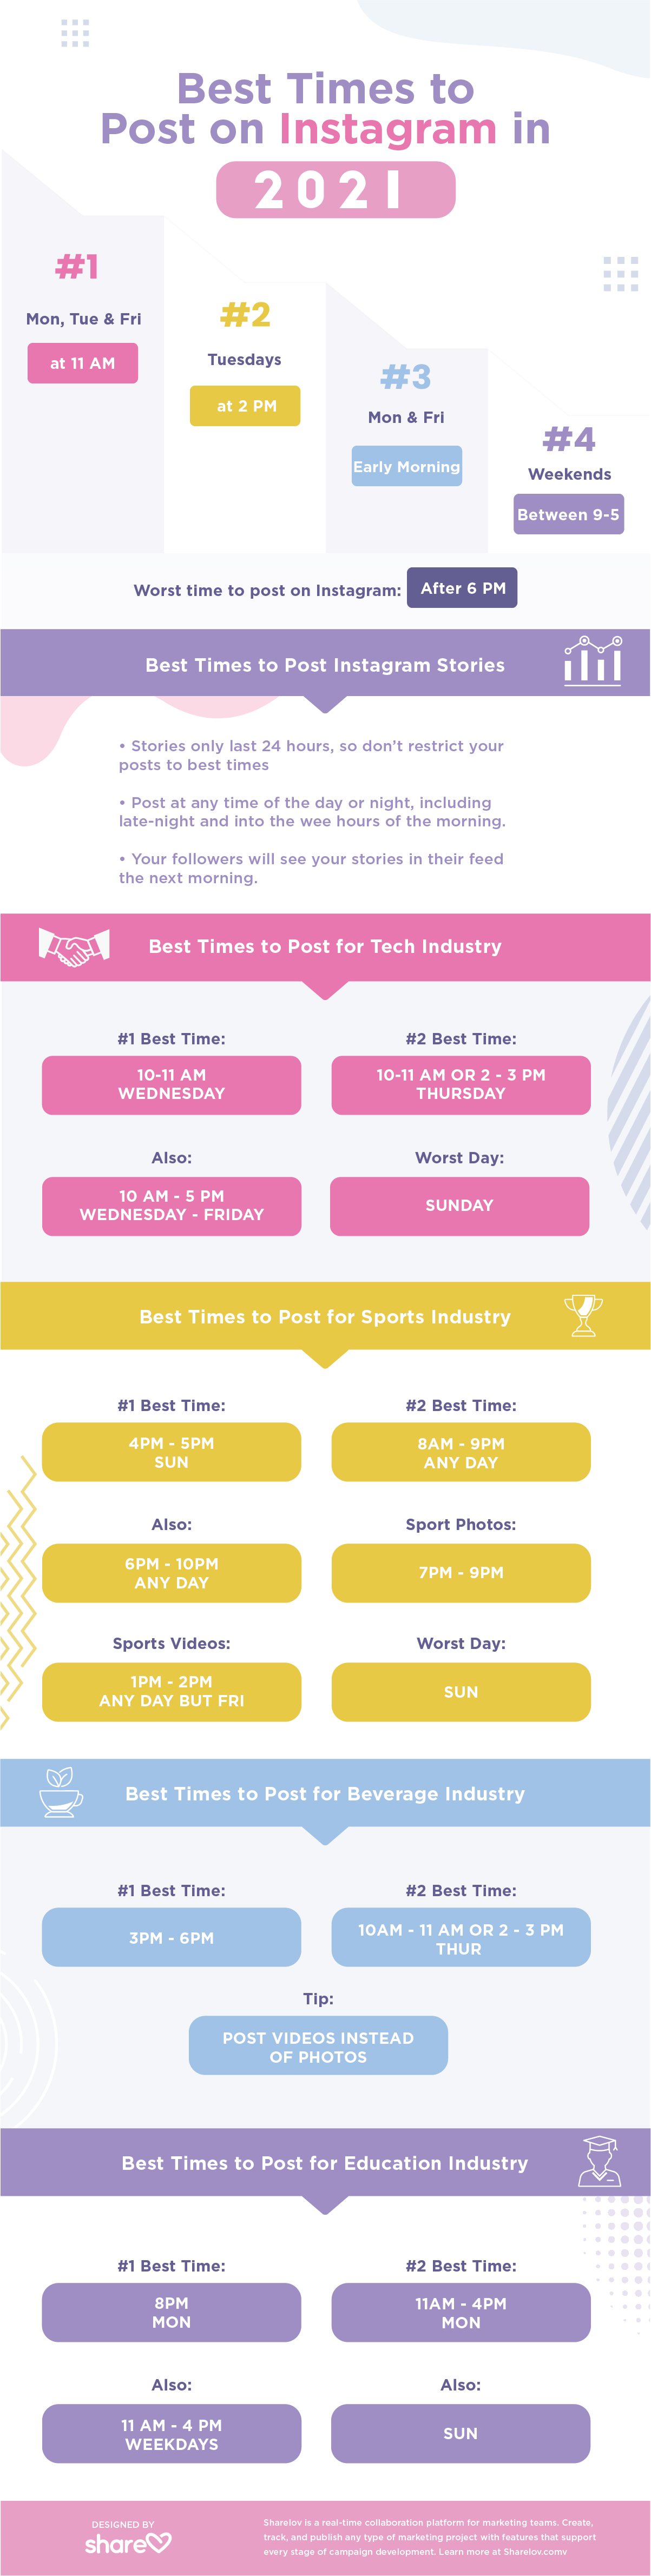 Best Time to Post on Instagram 2021 Cheat Sheet